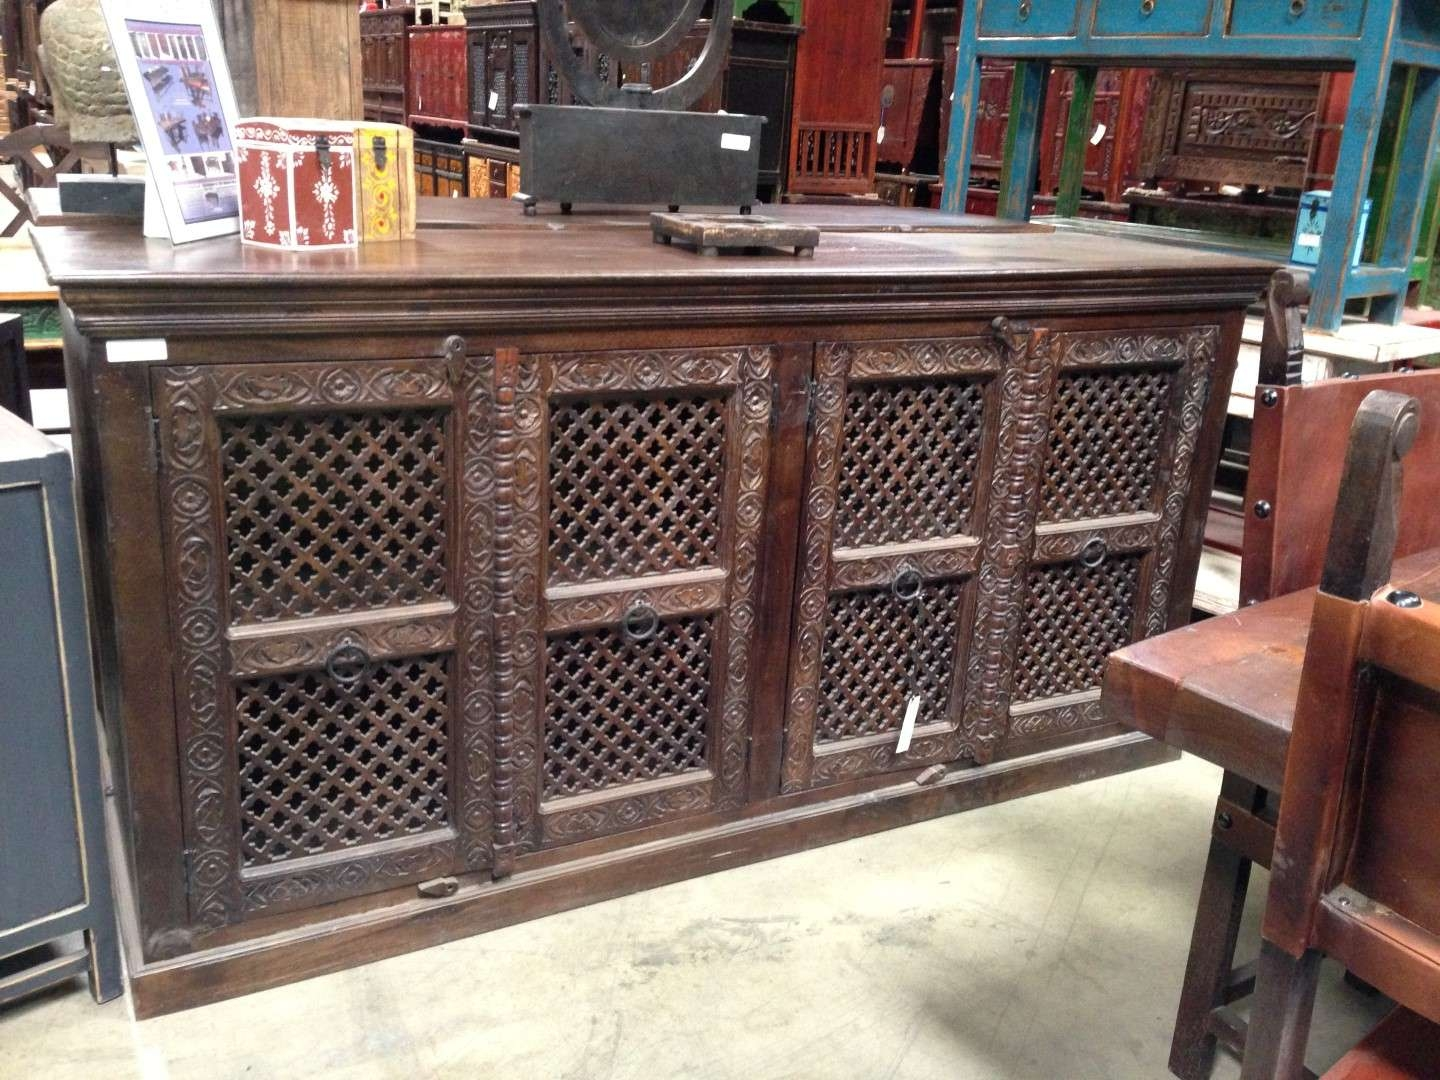 Imported Rustic Sideboards From India, China, Indonesia And Mexico Inside Indian Sideboards Furniture (View 9 of 20)